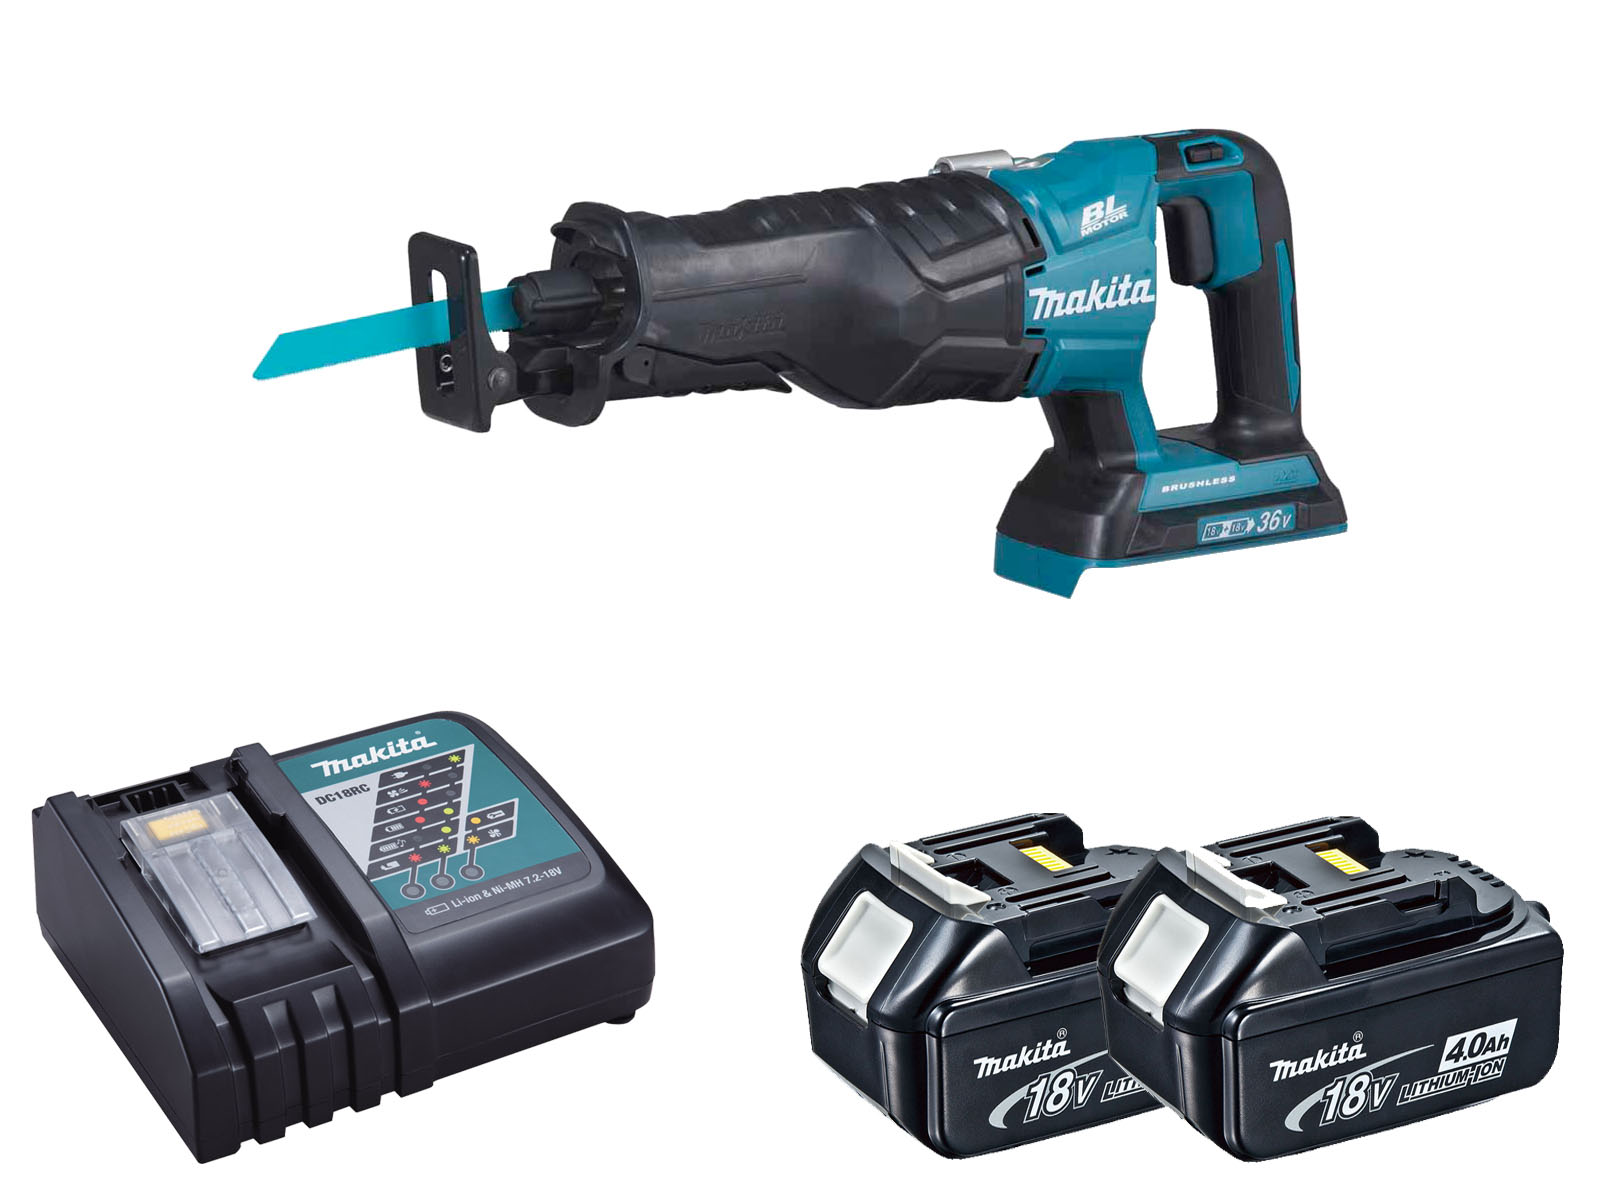 Makita DJR360Z Twin 18V (36V) Brushless Reciprocating Saw LXT - 4.0ah Pack